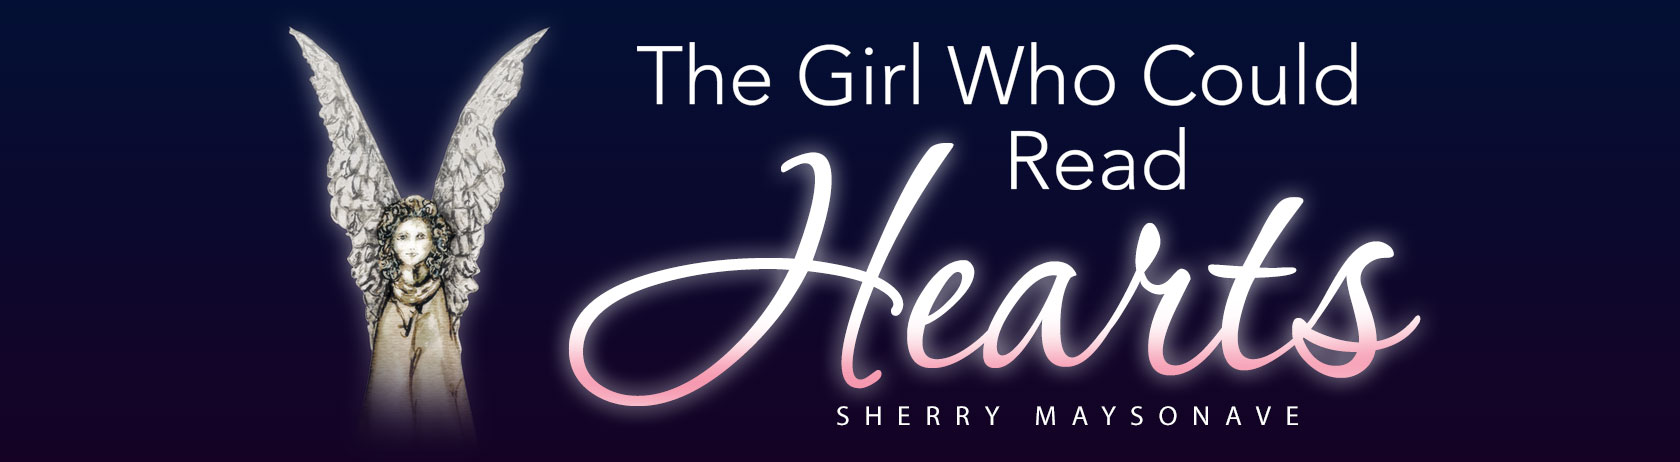 The Girl Who Could Read Hearts by Sherry Maysonave